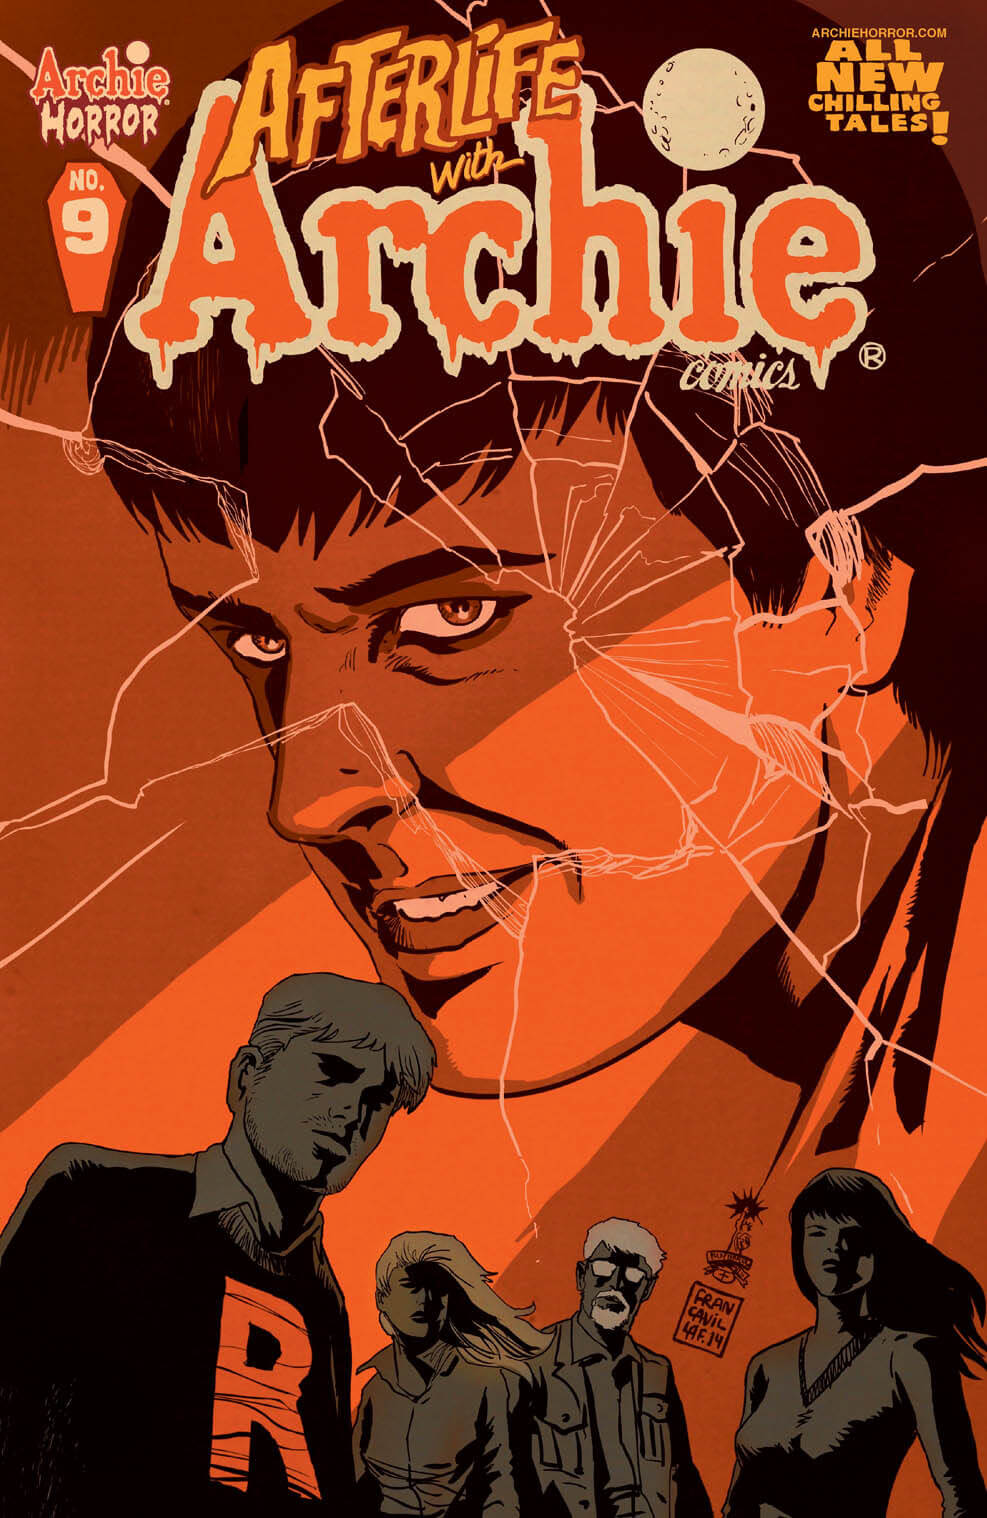 AFTERLIFE WITH ARCHIE #9 Cover by Francesco Francavilla - On Sale 6/1